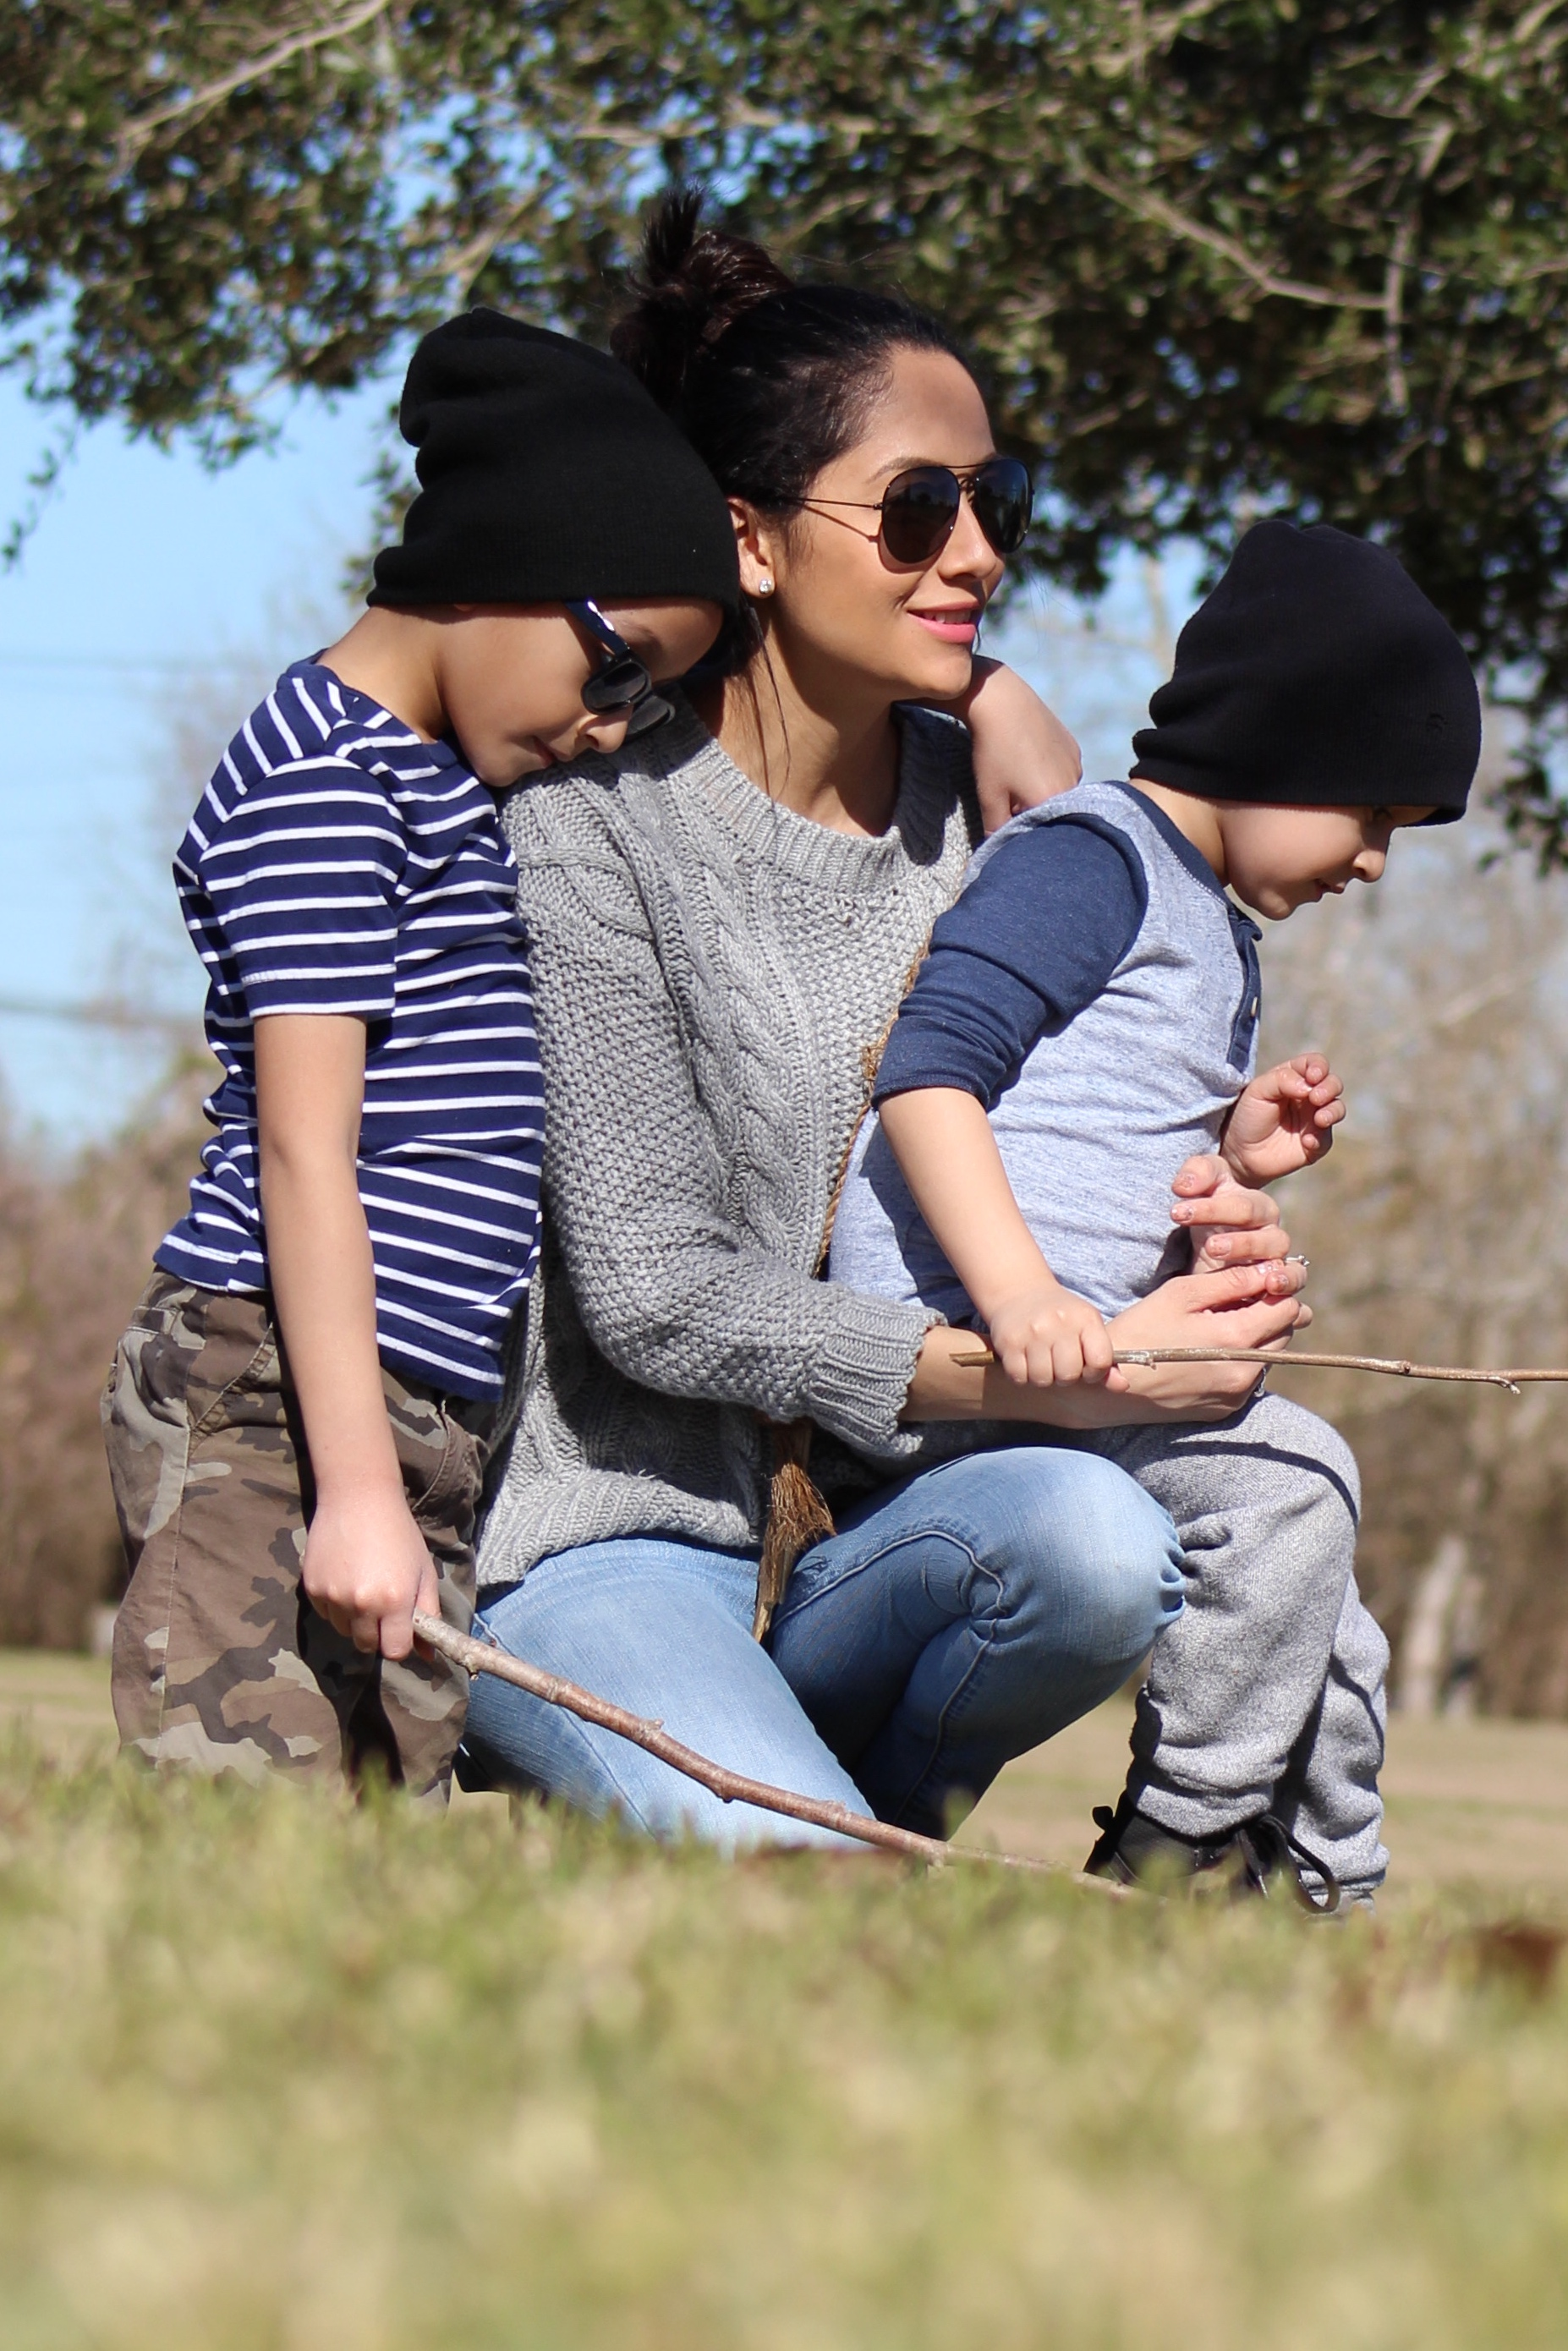 Lifestyle blogger Lilly Beltran opens up about her battle with postpartum depression